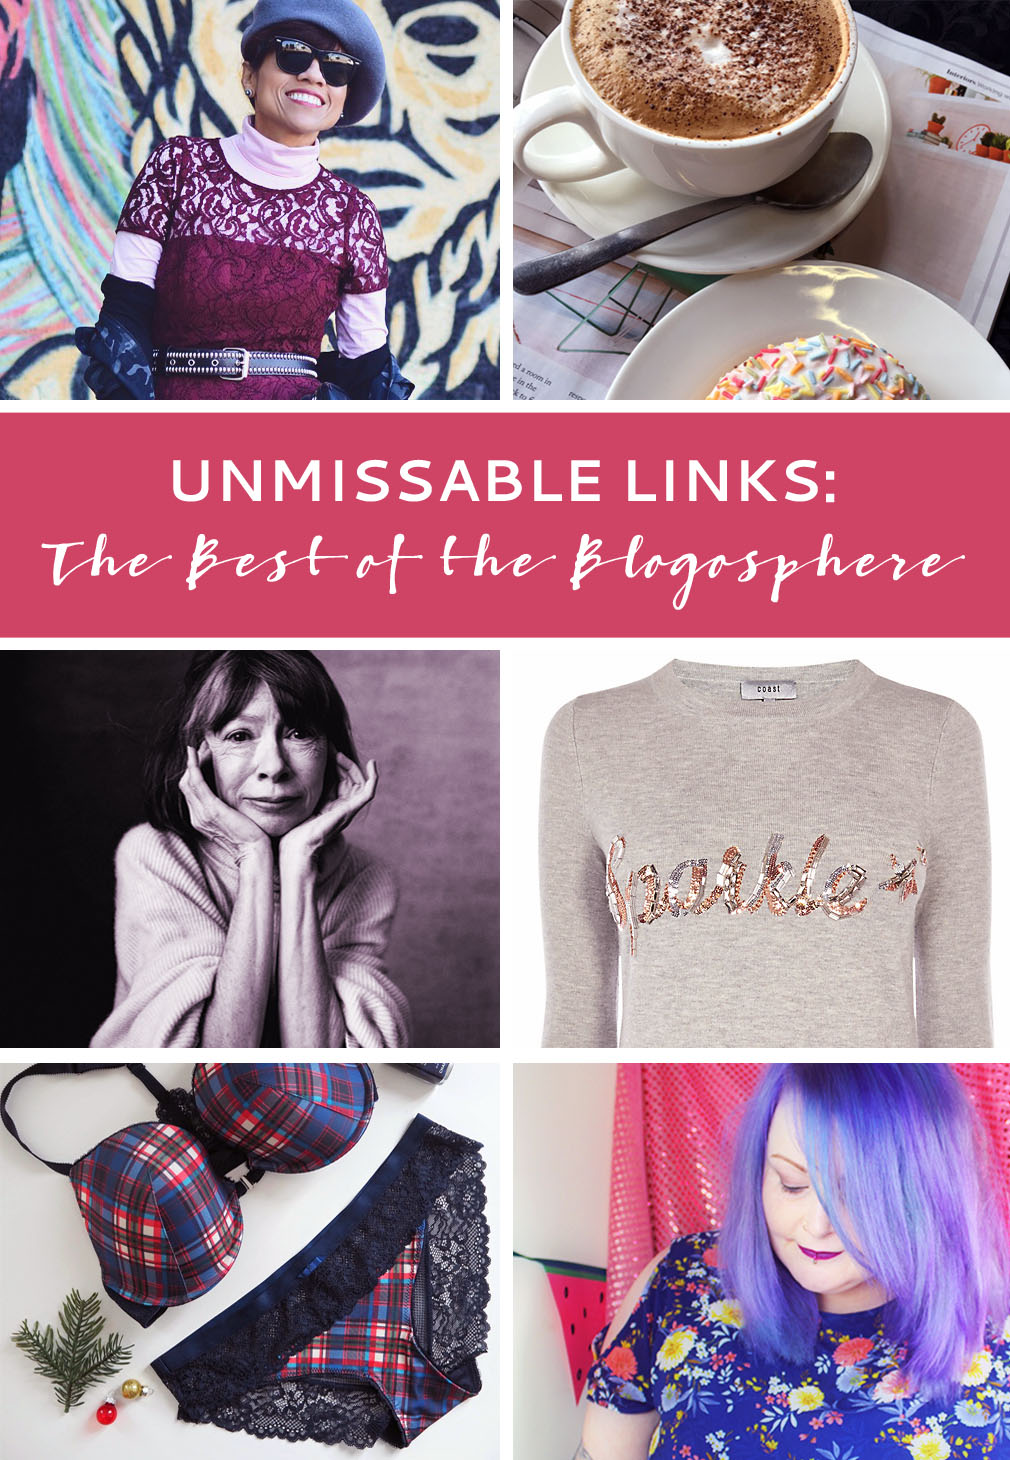 The Best of the Blogosphere November 2016: Restyling wedding dresses - Menopause signs - hearing aids - Christmas sweaters - short hair for older women - and more! | Not Dressed As Lamb